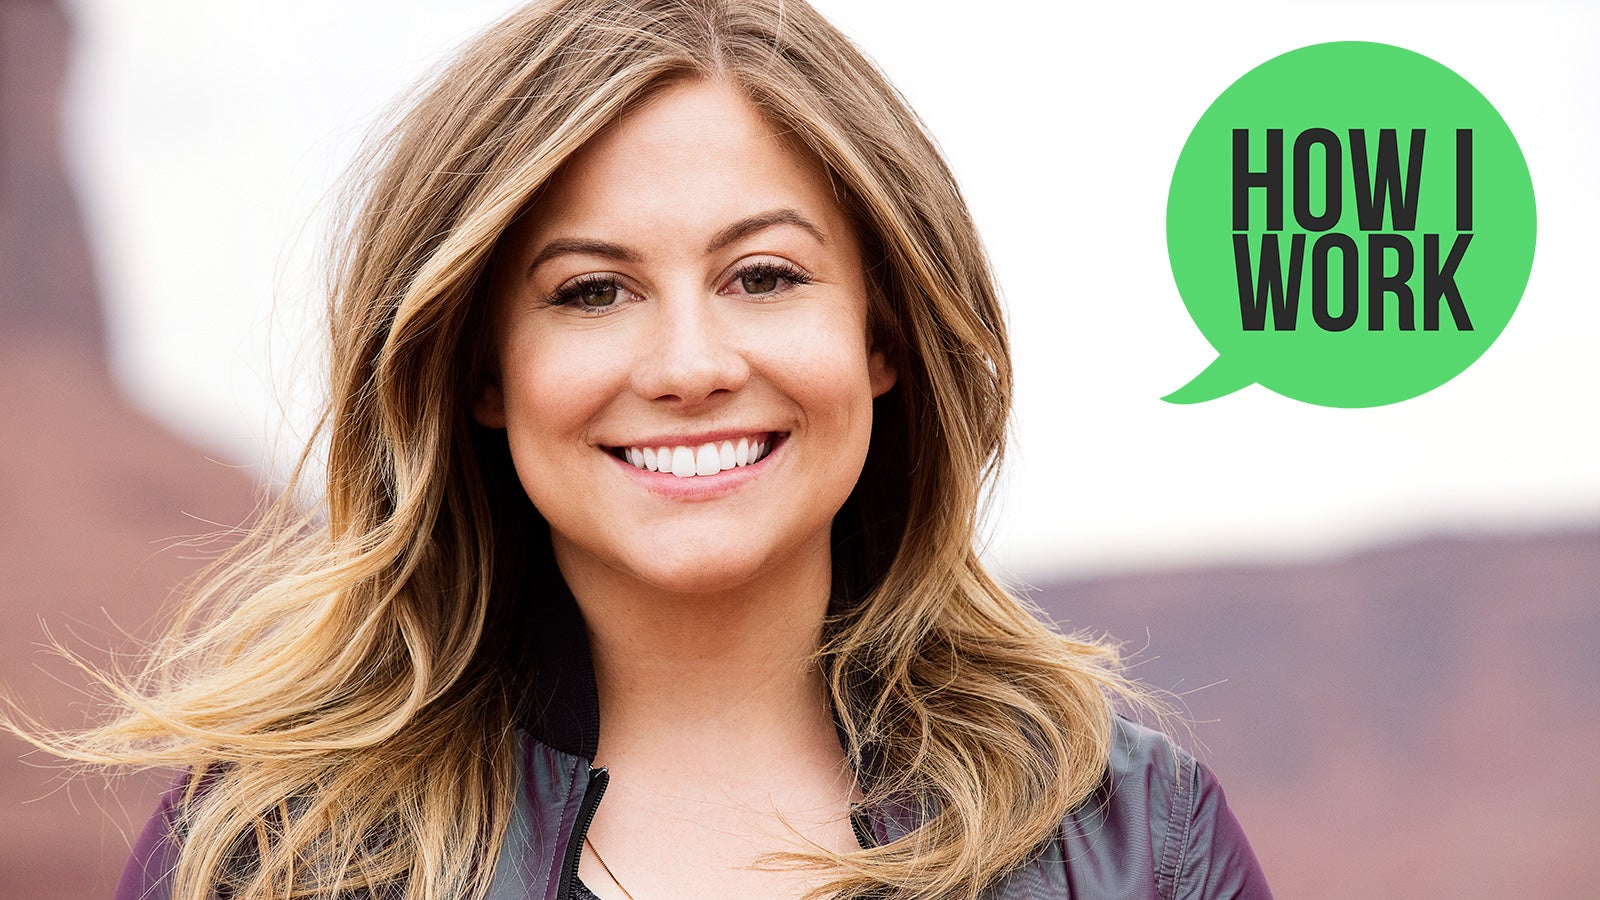 I'm Olympic Gymnast Turned Investor Shawn Johnson East, And This Is How I Work